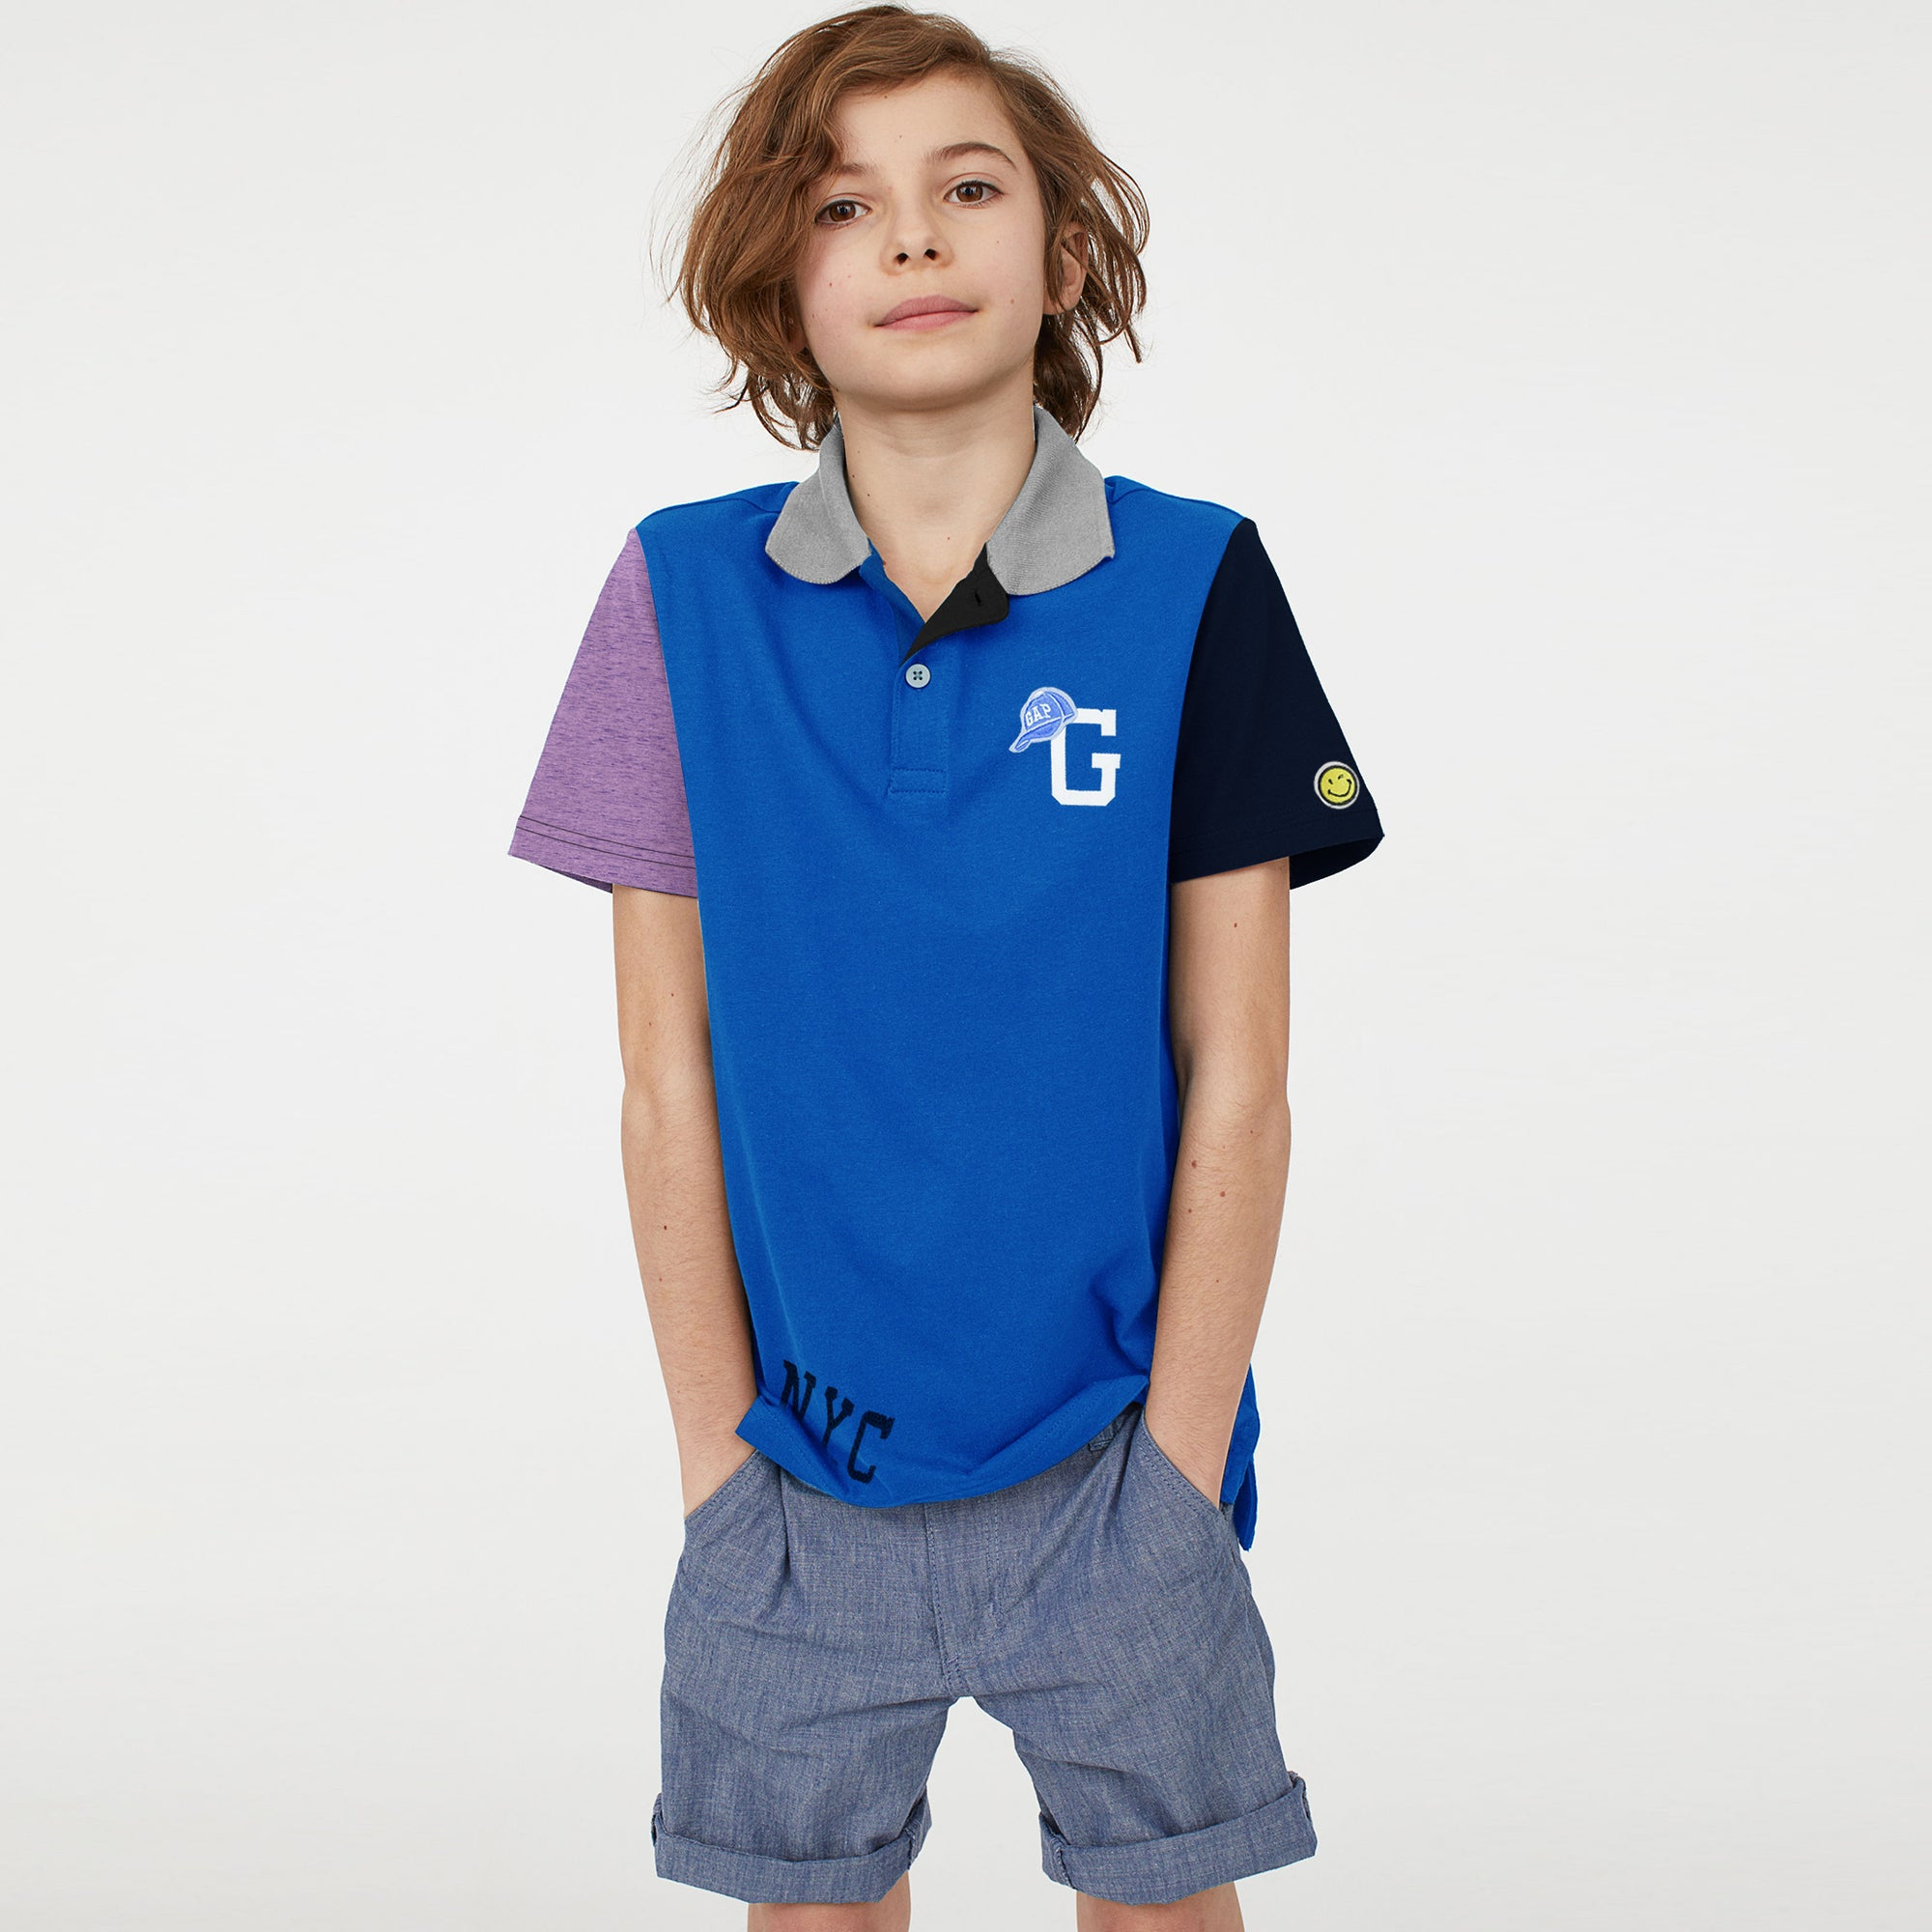 brandsego - GAP Half Sleeve P.Q Polo Shirt For Kids-Blue with Panels-BE8510